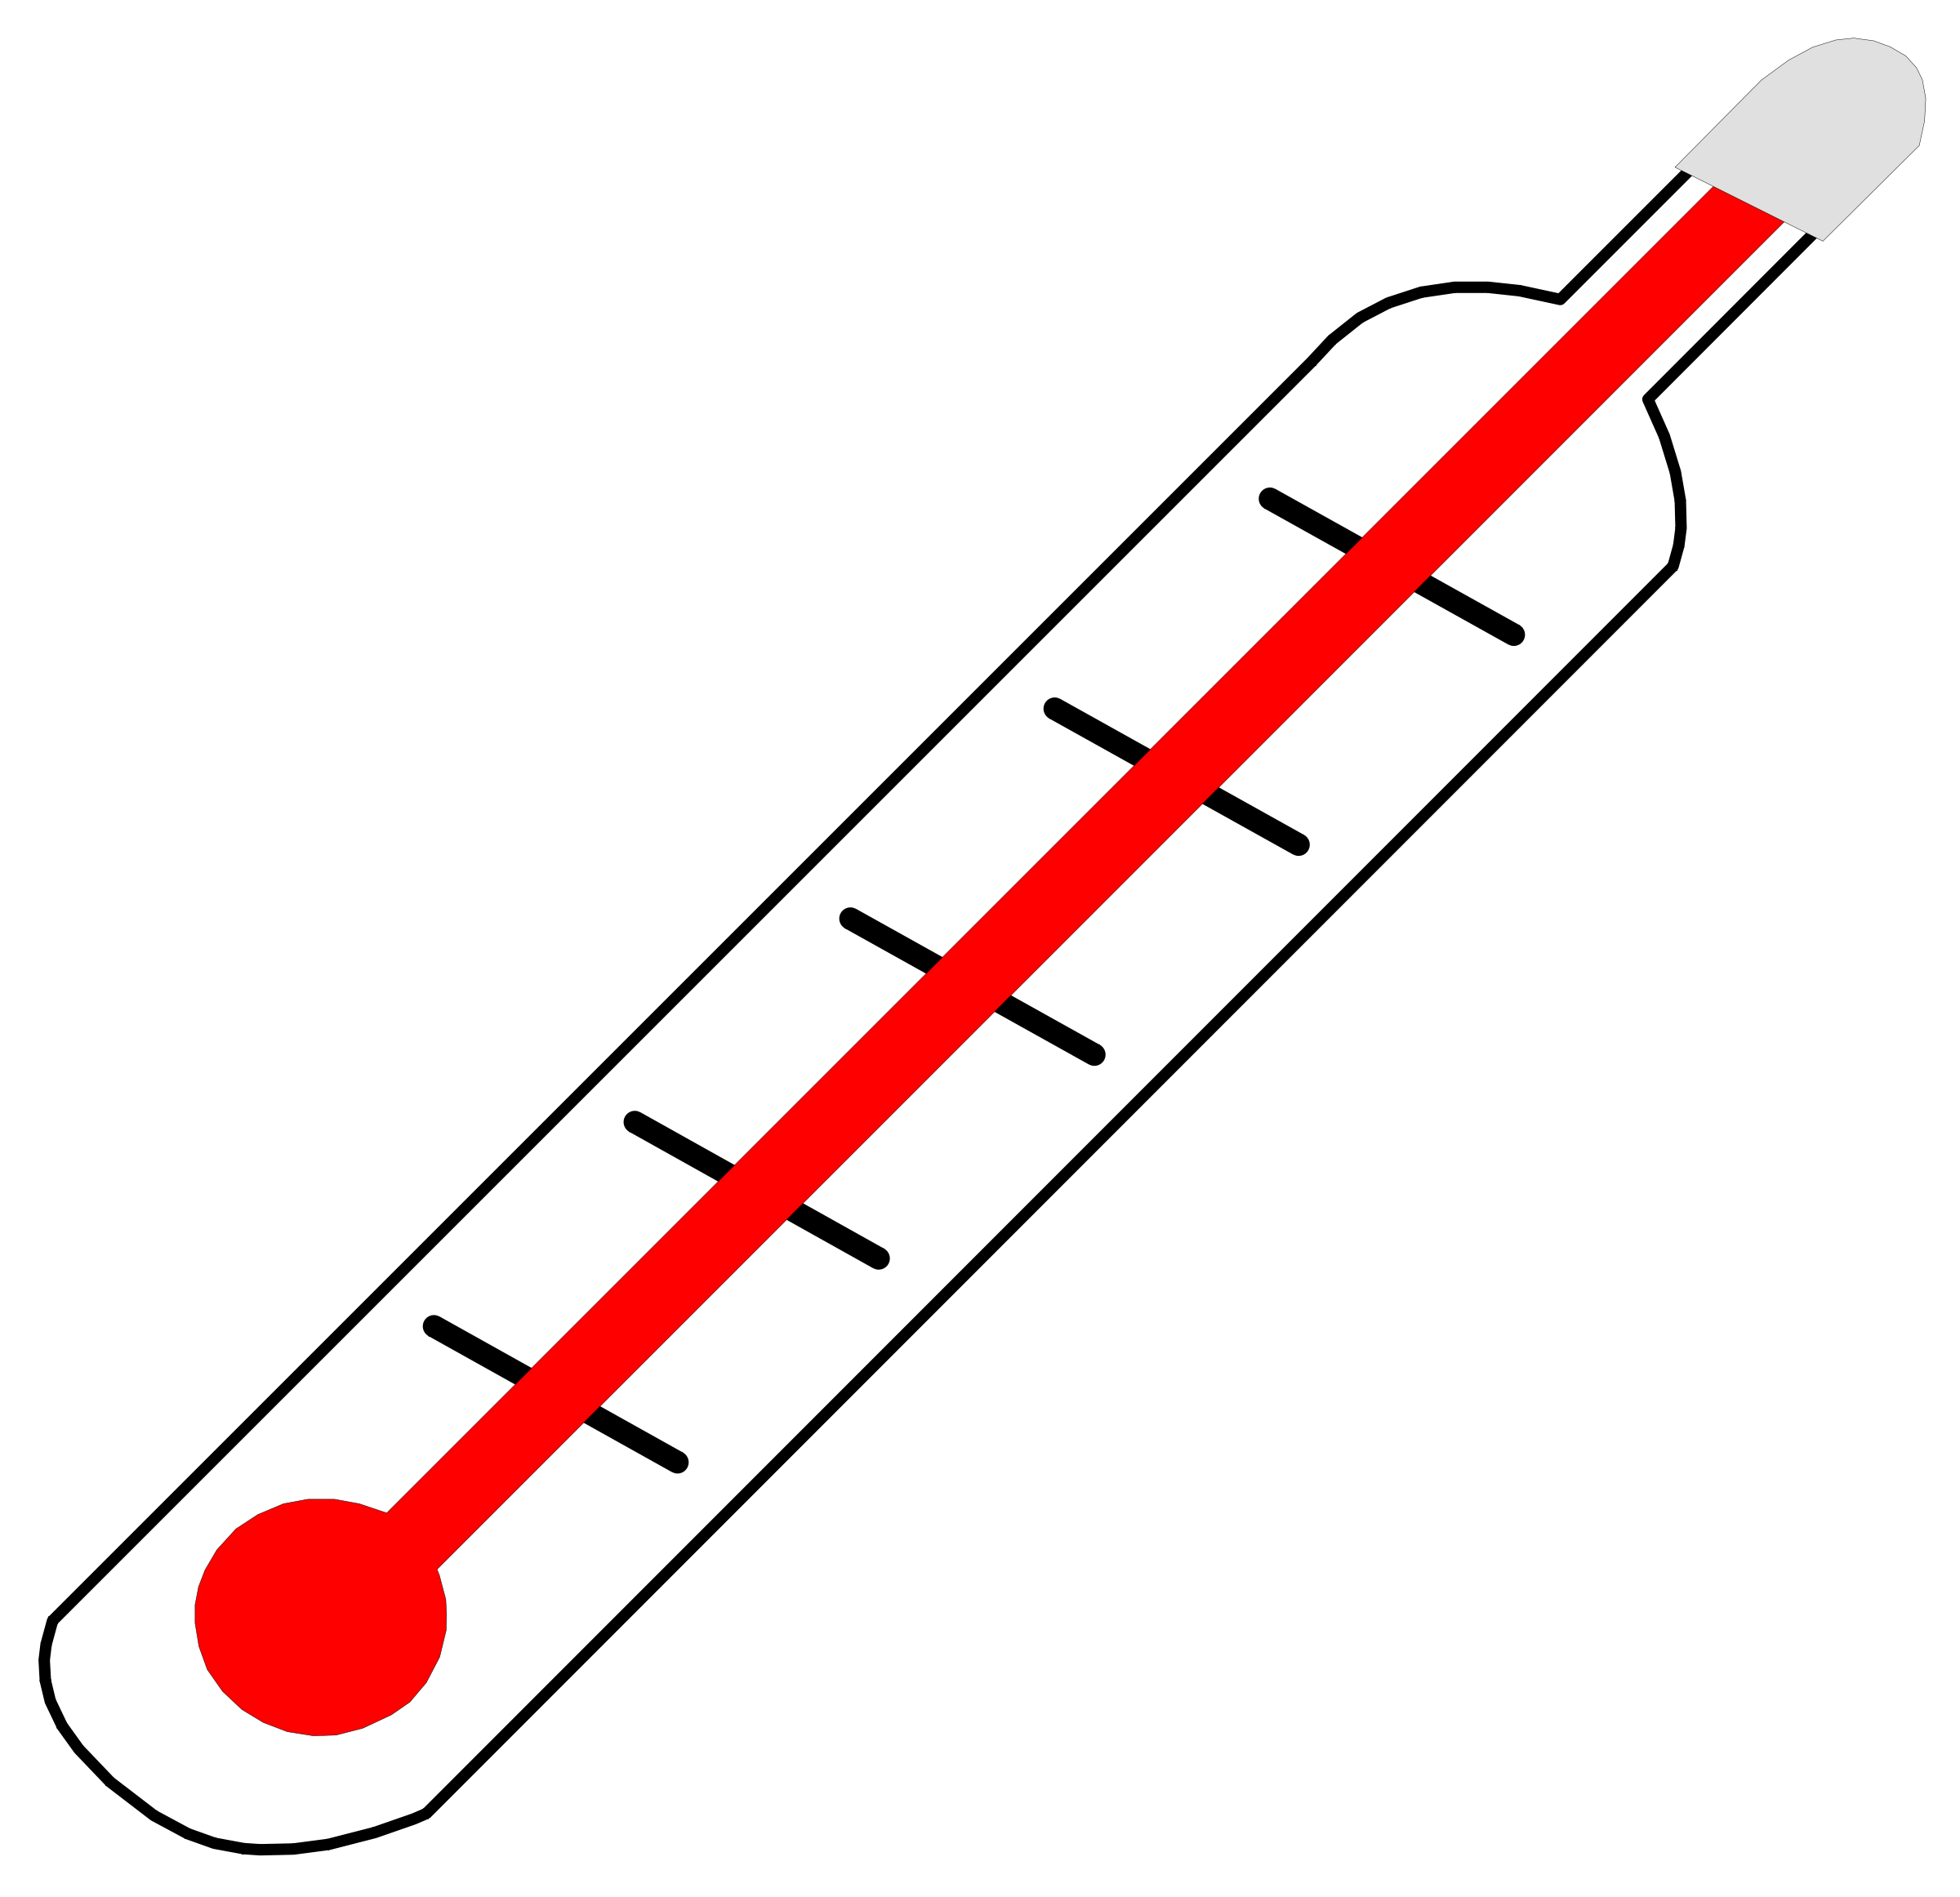 Thermometer Thermostat Clipart Free Clip-Thermometer thermostat clipart free clipart images-12